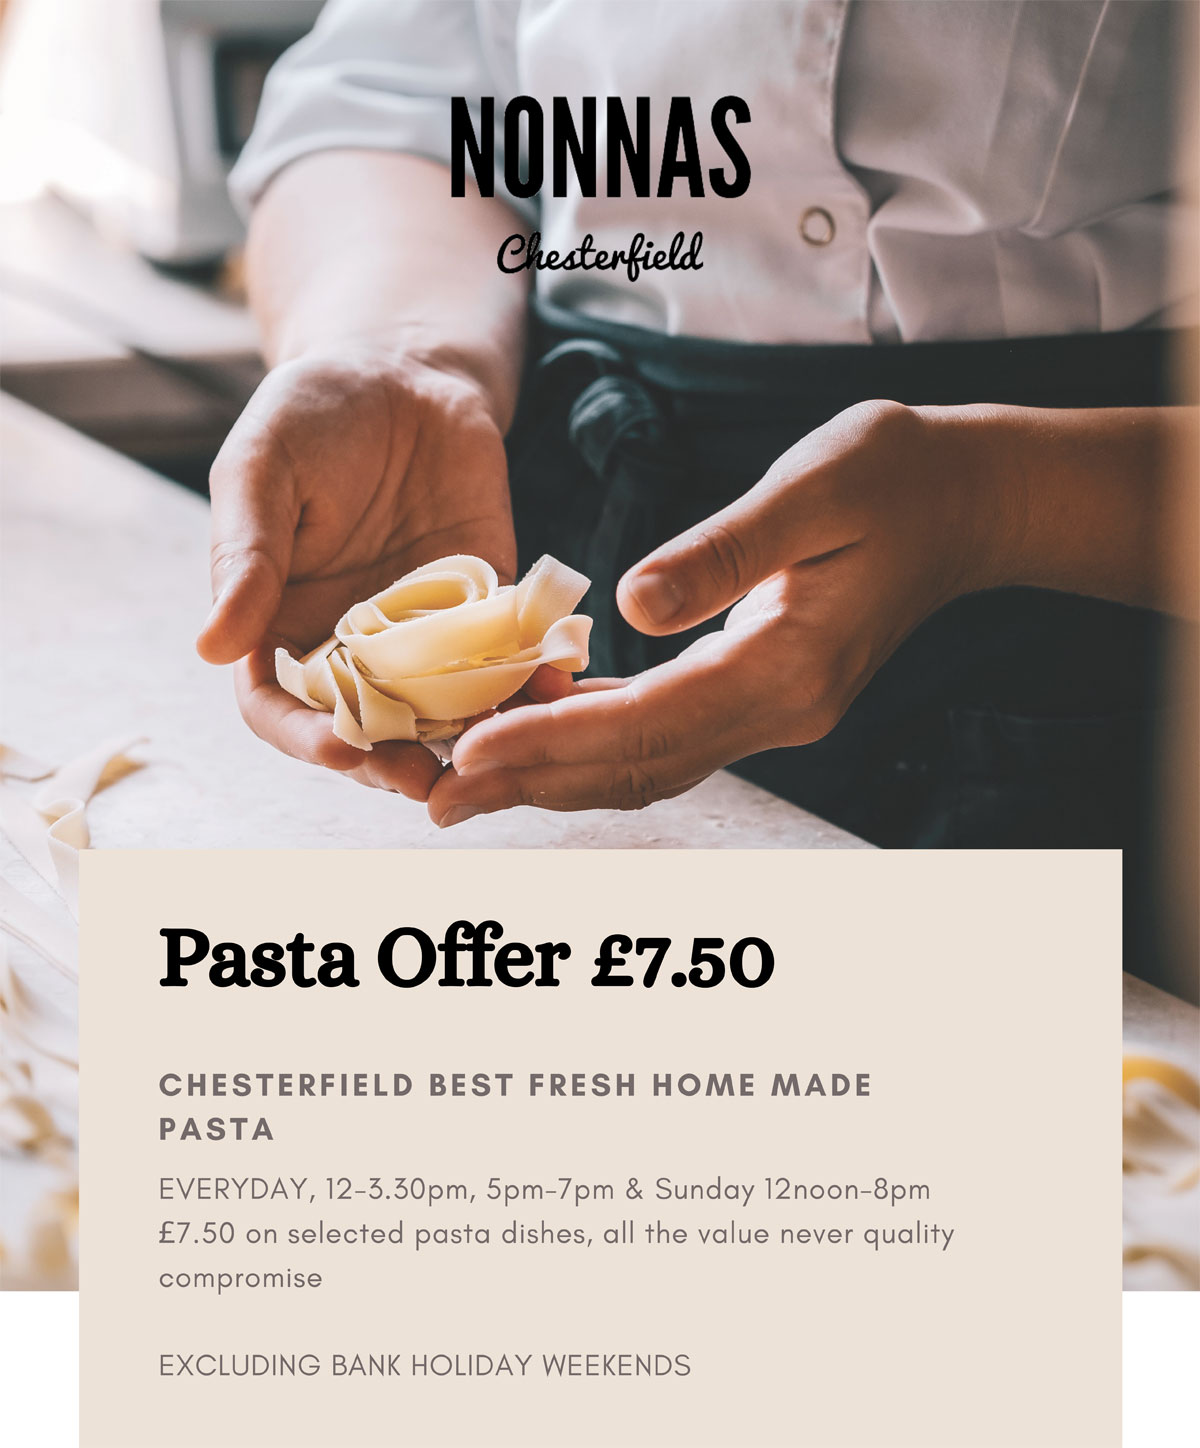 pasta offer restaurant Chesterfield